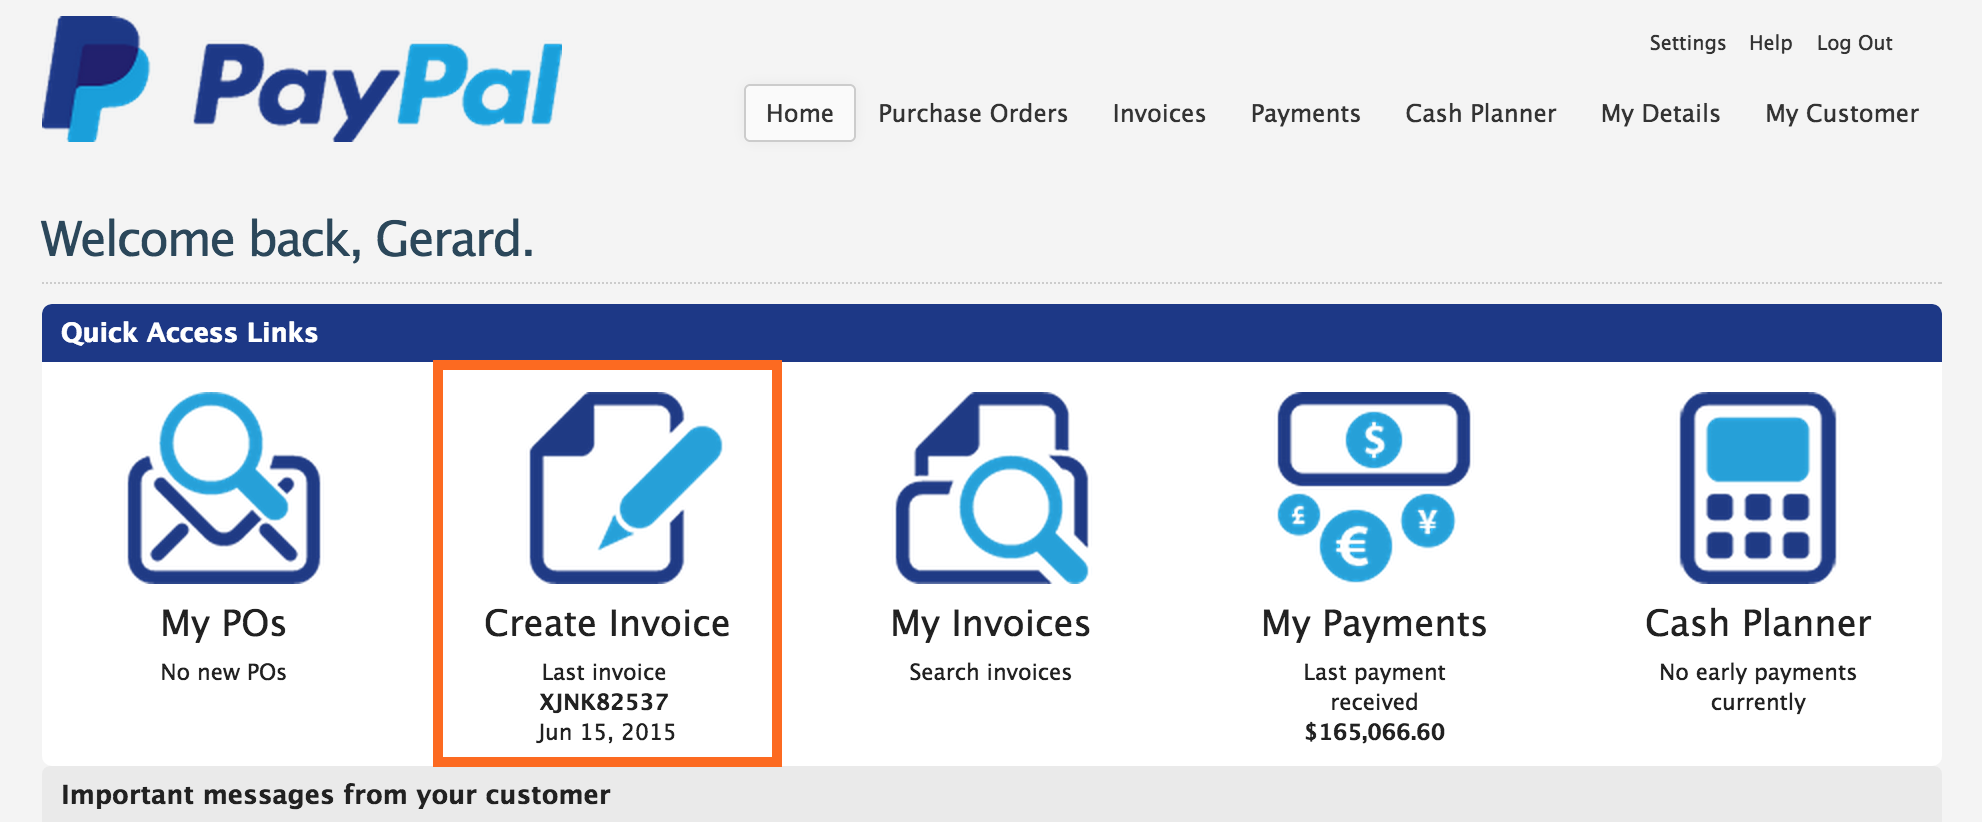 taulia support paypal creating an invoice from a purchase order